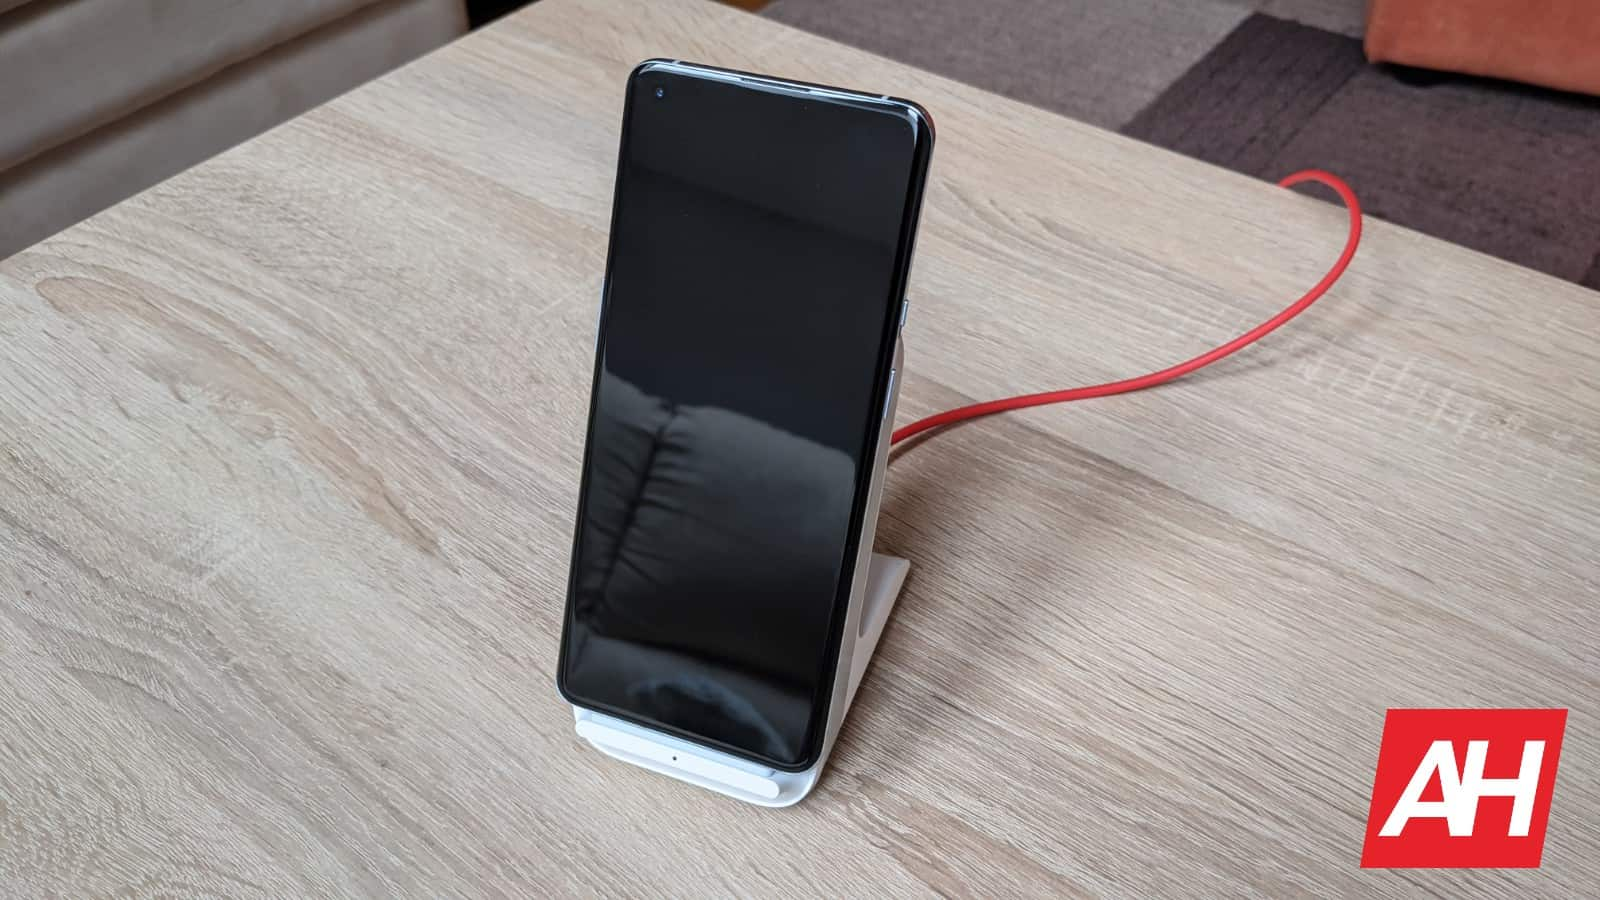 AH OnePlus Warp Charge 50 Wireless Charger KL image 3